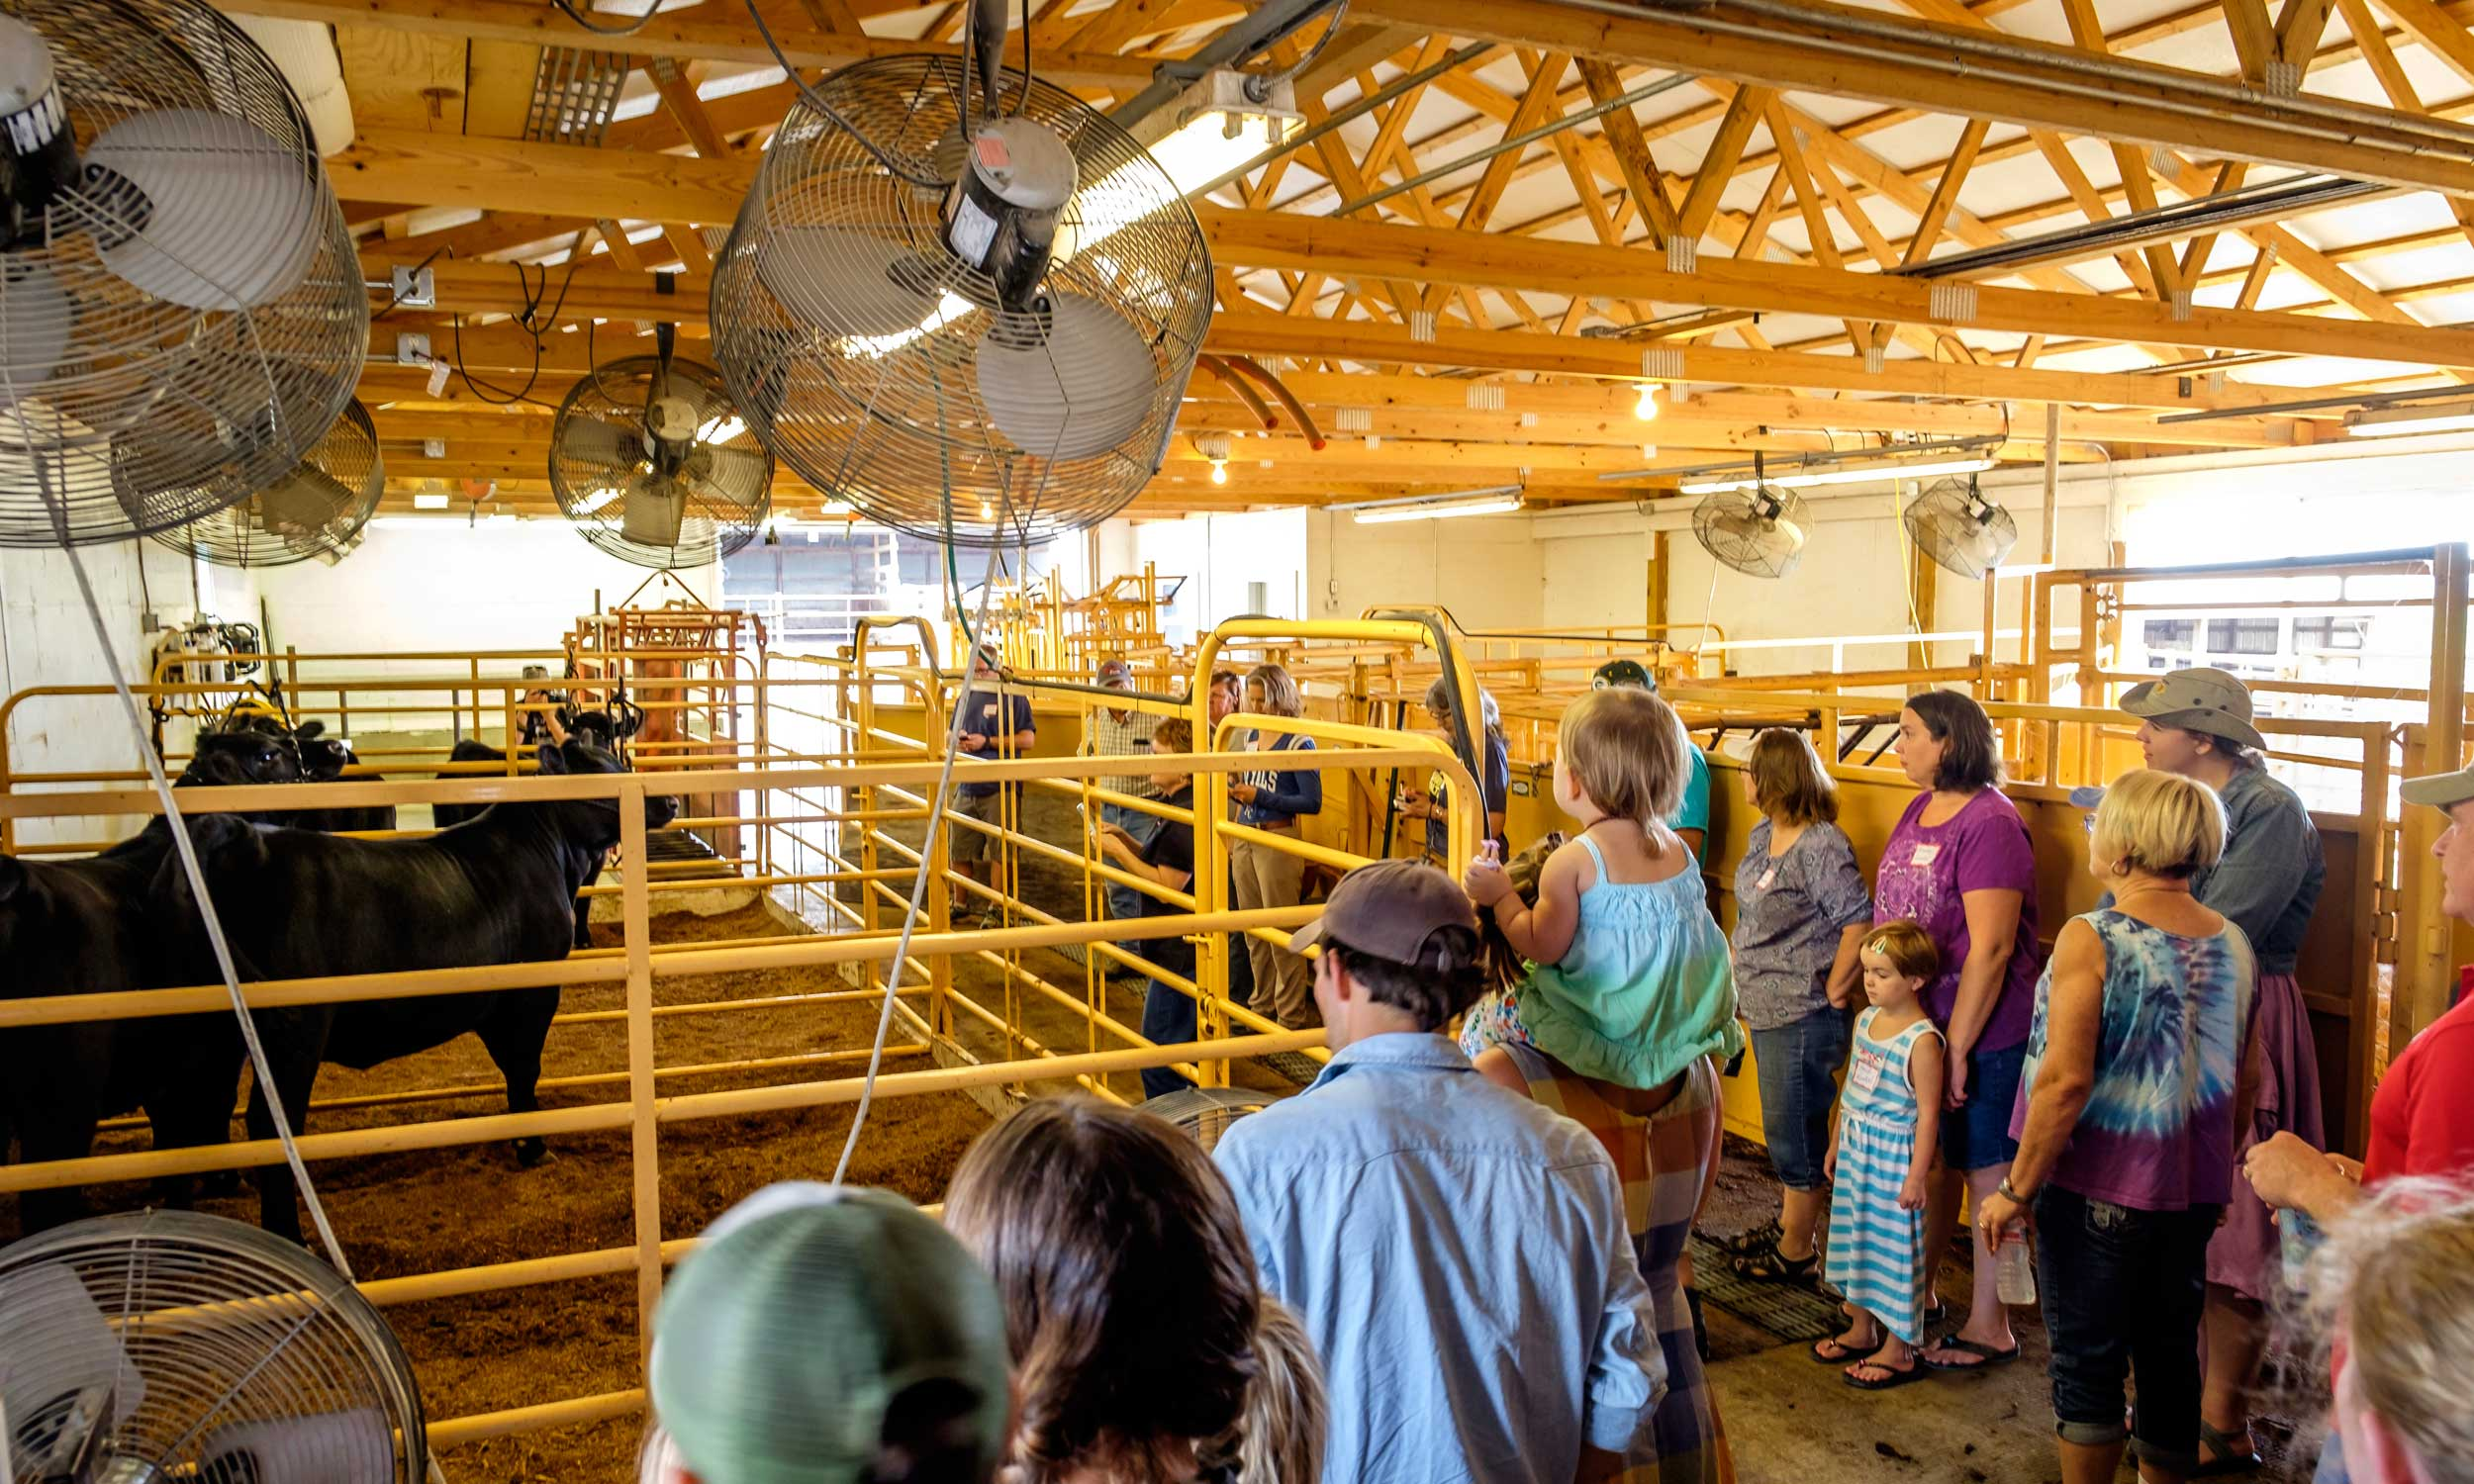 April Valley Farms is a family diversified farming operation raising Registered Angus Cattle, crossbred hogs and crops of wheat, corn, soybeans, and hay in Leavenworth County.